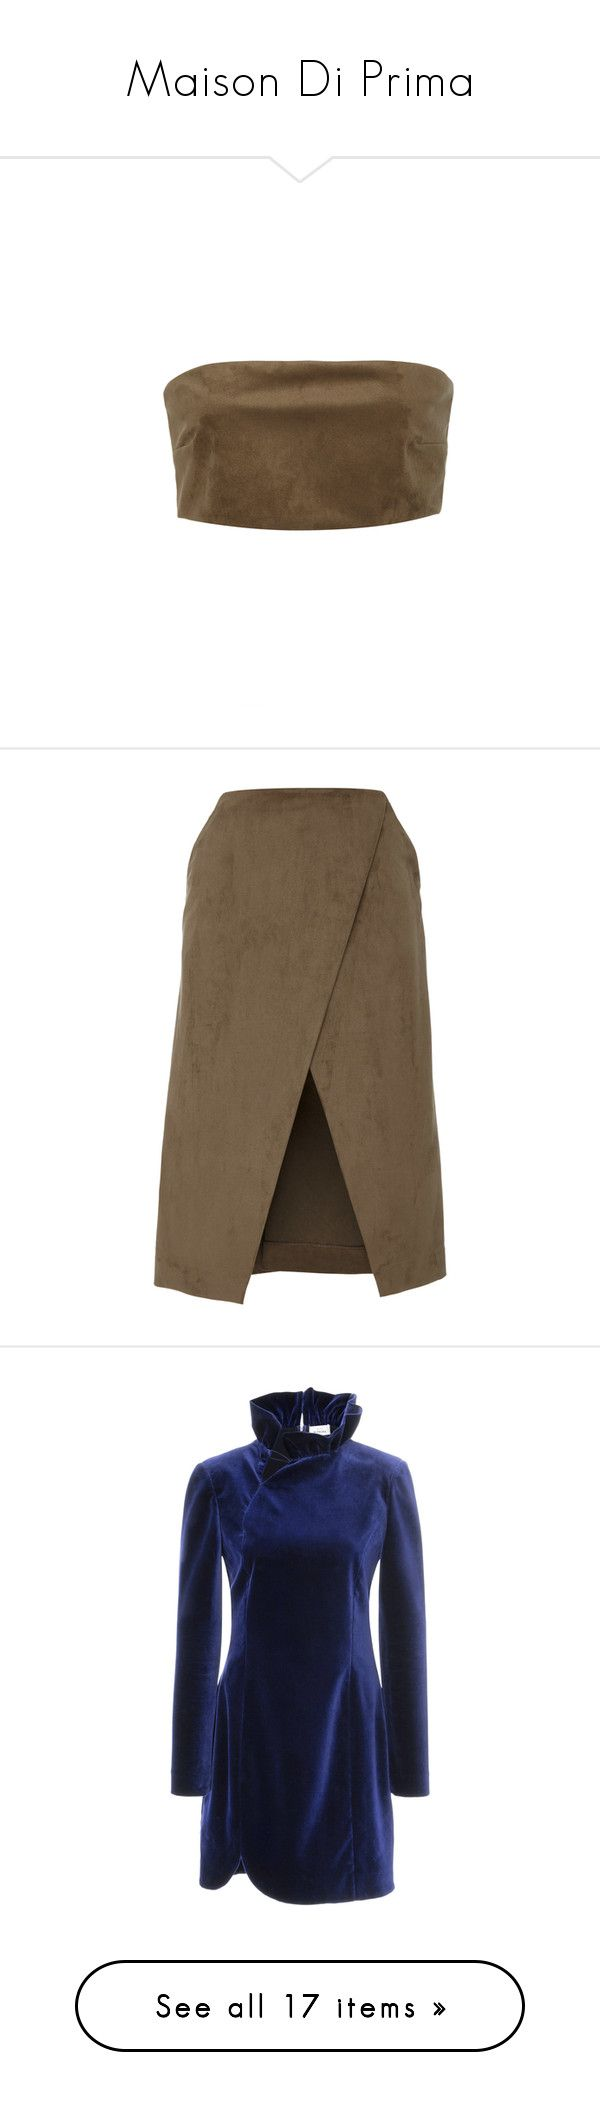 """Maison Di Prima"" by designing-myworld ❤ liked on Polyvore featuring tops, crop top, green, white top, bandeau crop top, sleeveless crop top, no sleeve tops, skirts, brown skirt and brown knee length skirt"